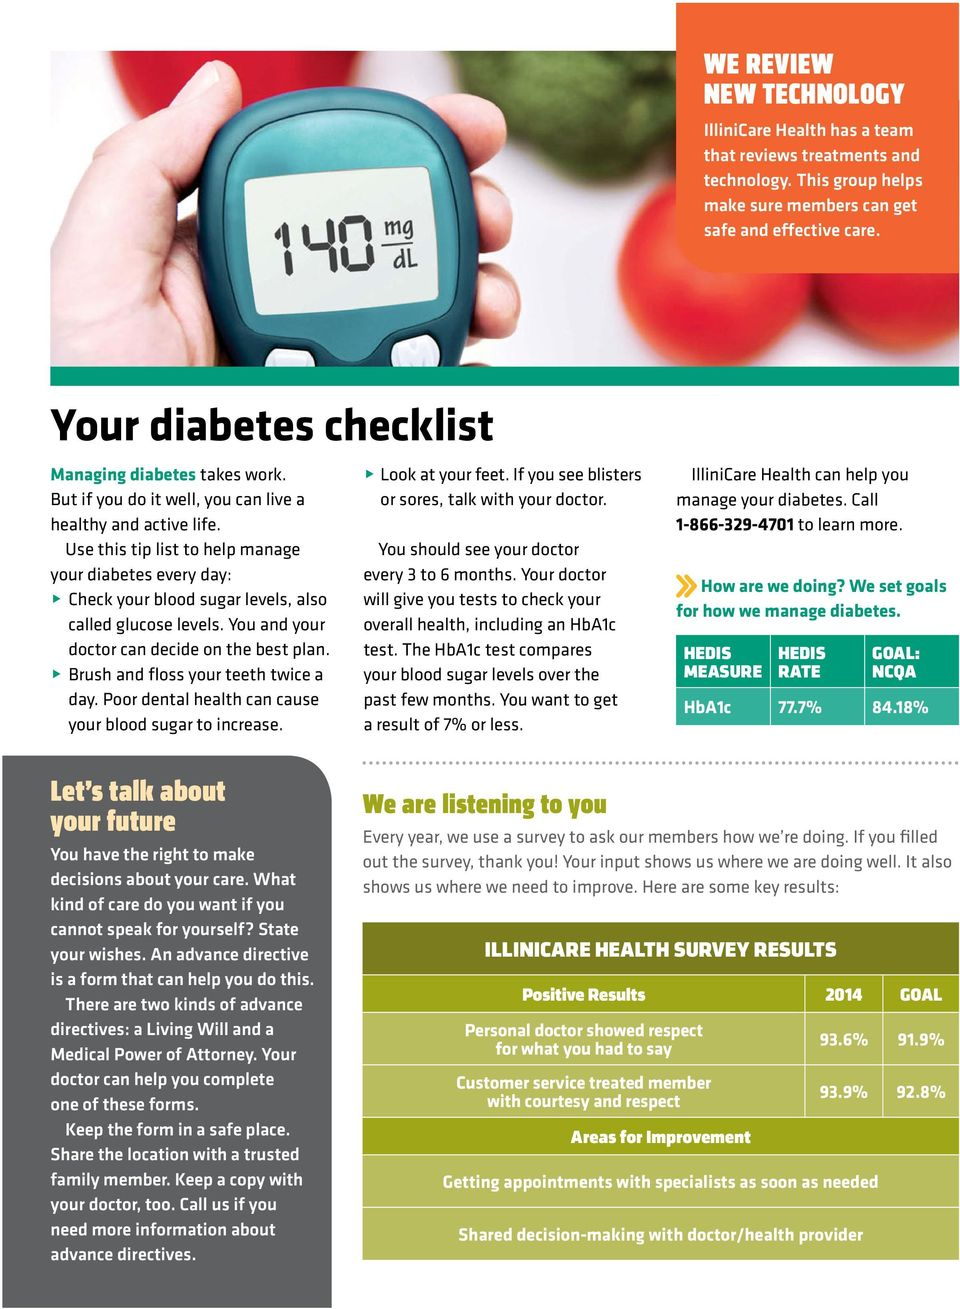 Use this tip list to help manage your diabetes every day: @ Check your blood sugar levels, also called glucose levels. You and your doctor can decide on the best plan.